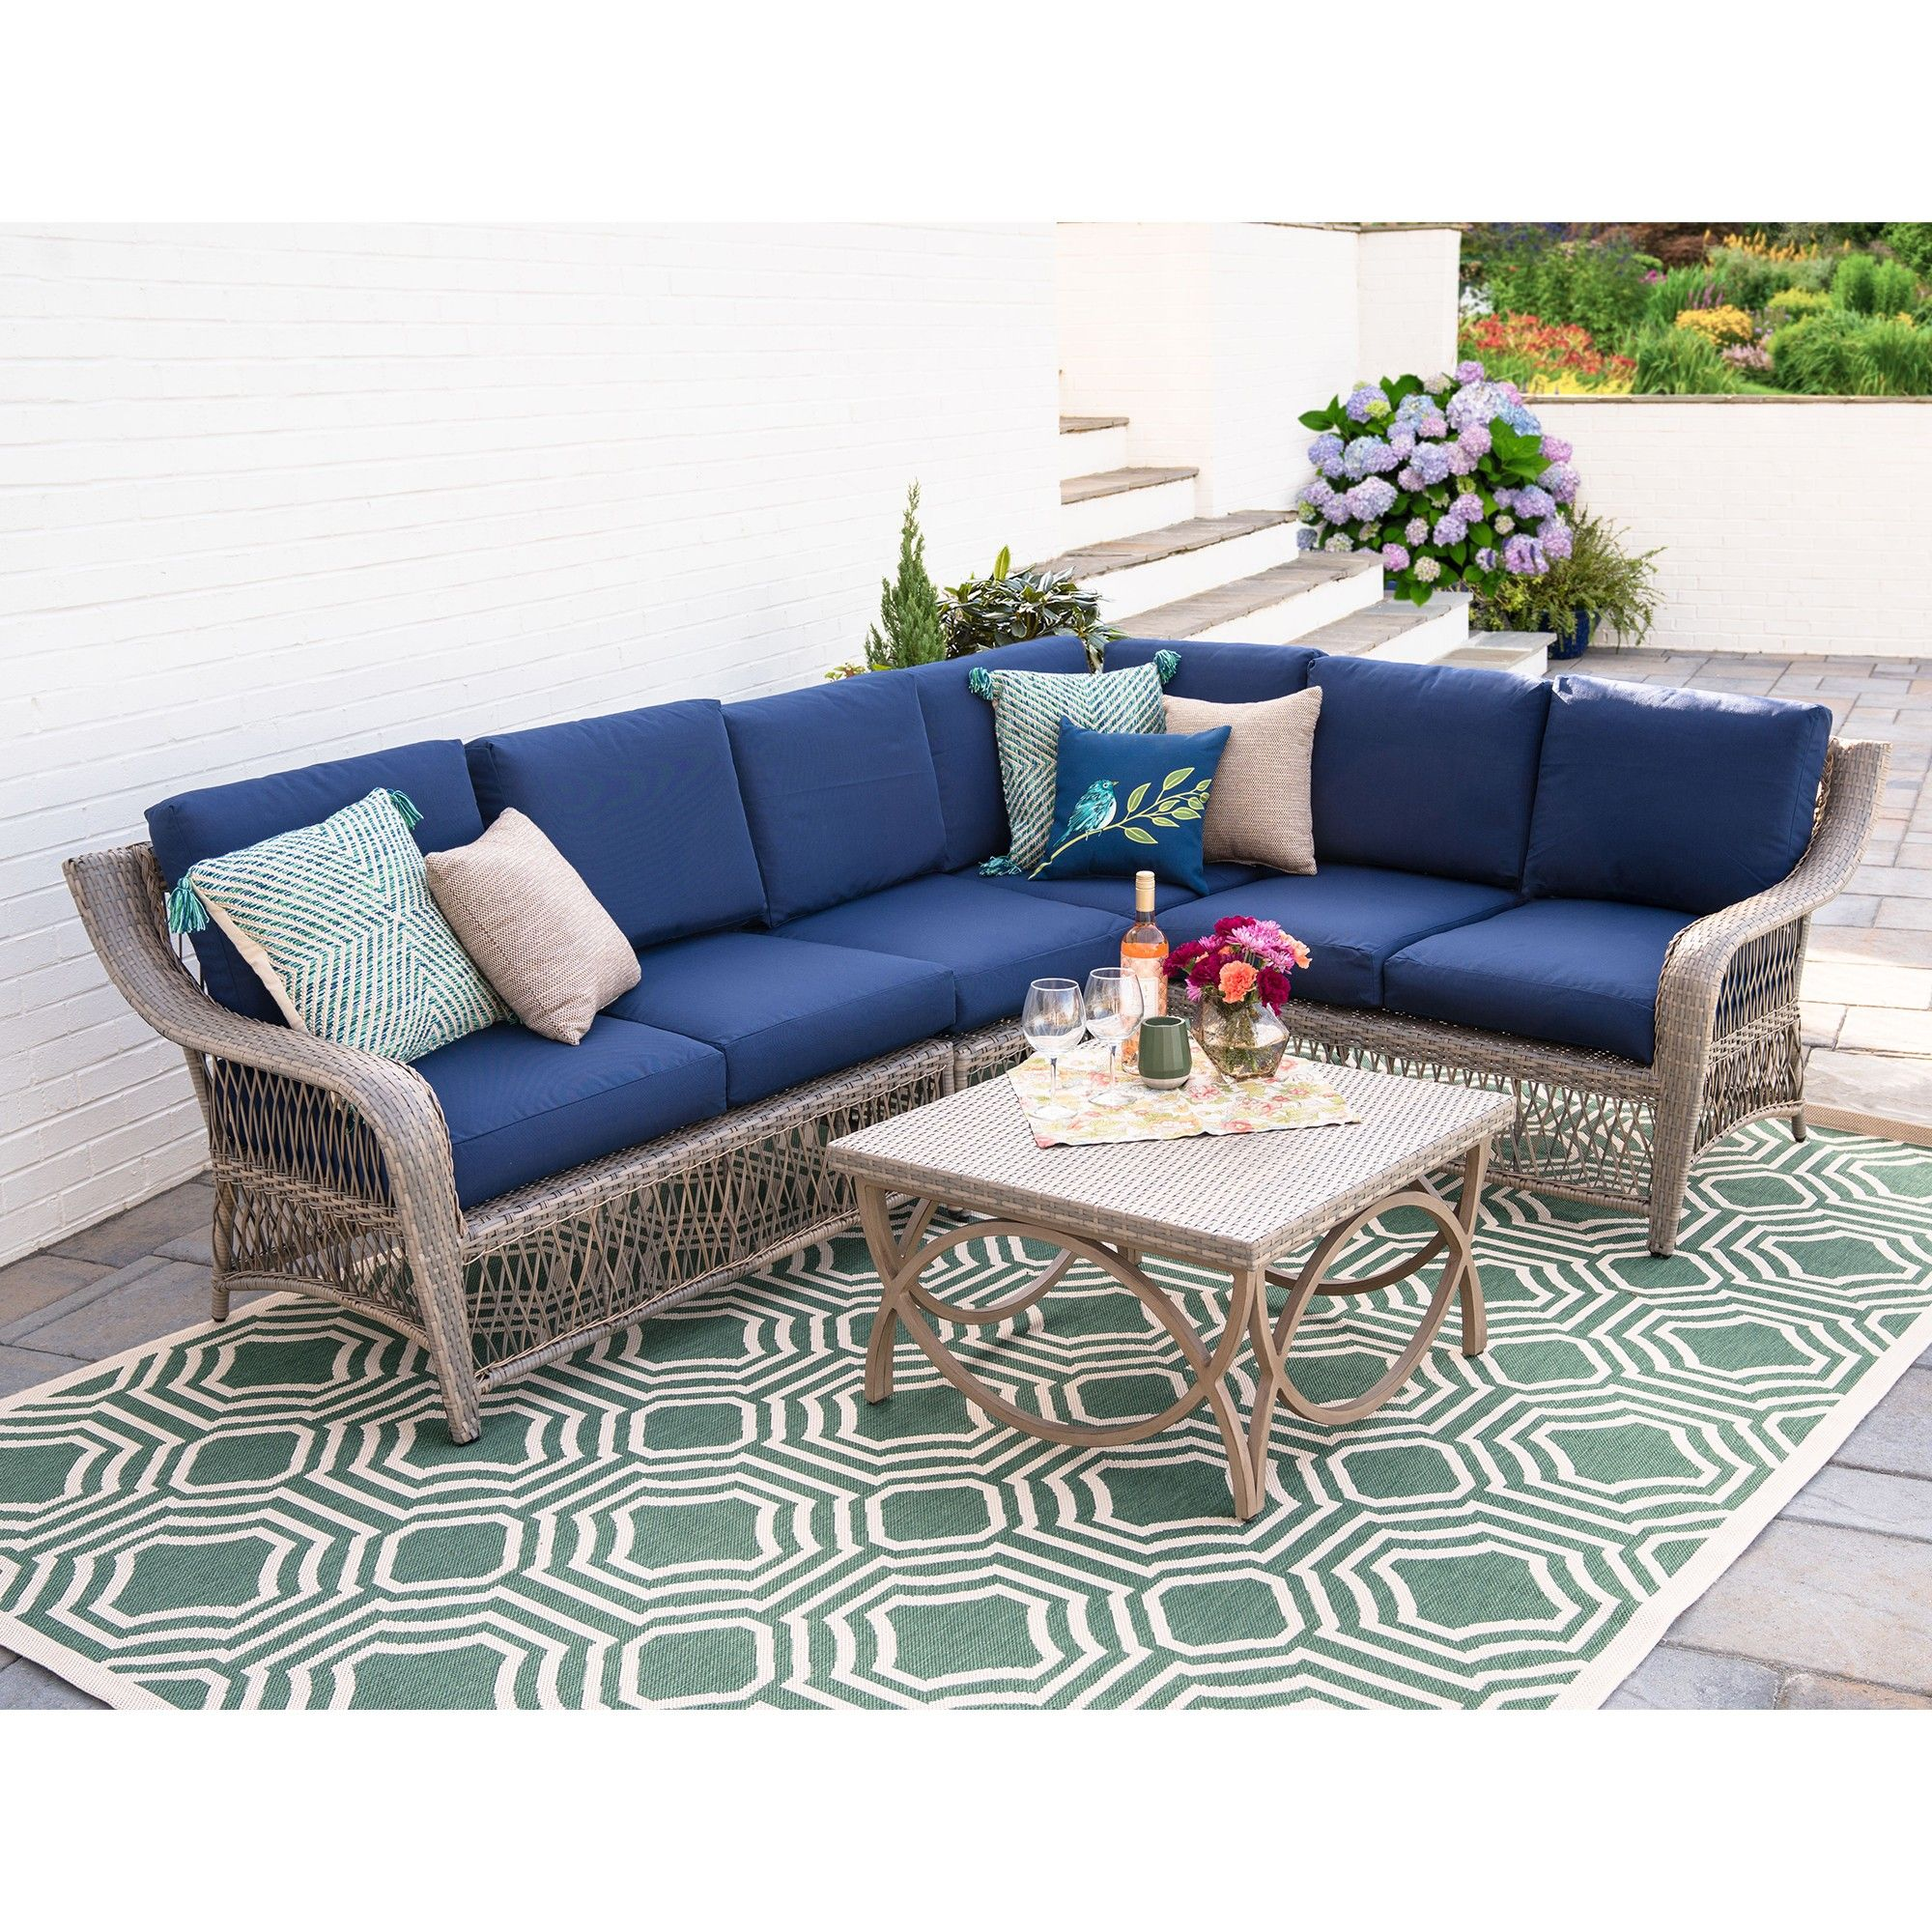 Super 5Pc Birmingham All Weather Wicker Corner Sectional Navy Home Interior And Landscaping Ologienasavecom